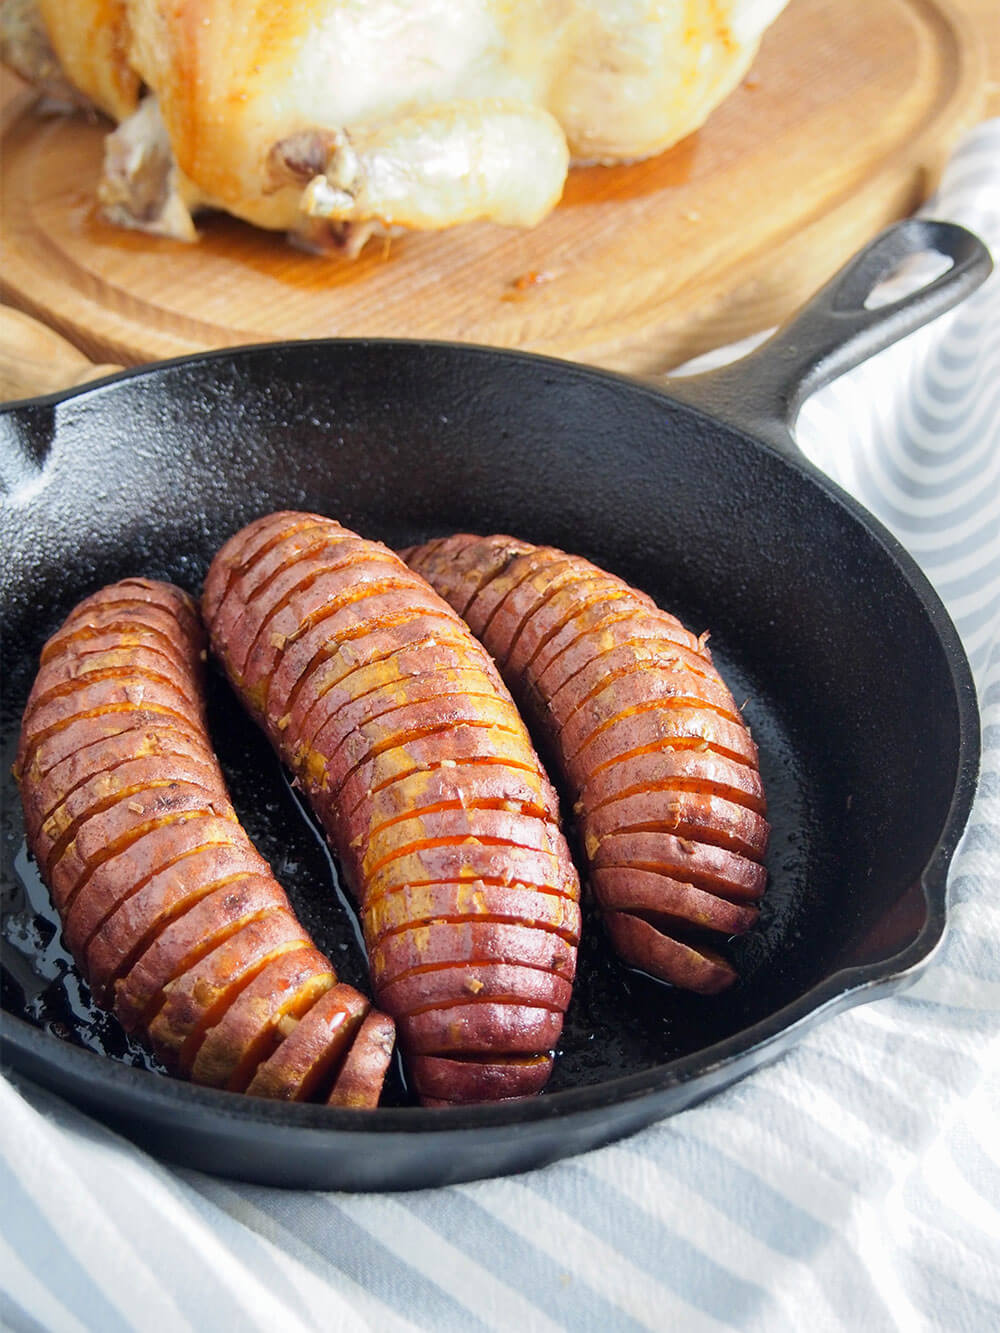 hasselback sweet potatoes here serves as a side to roast chicken